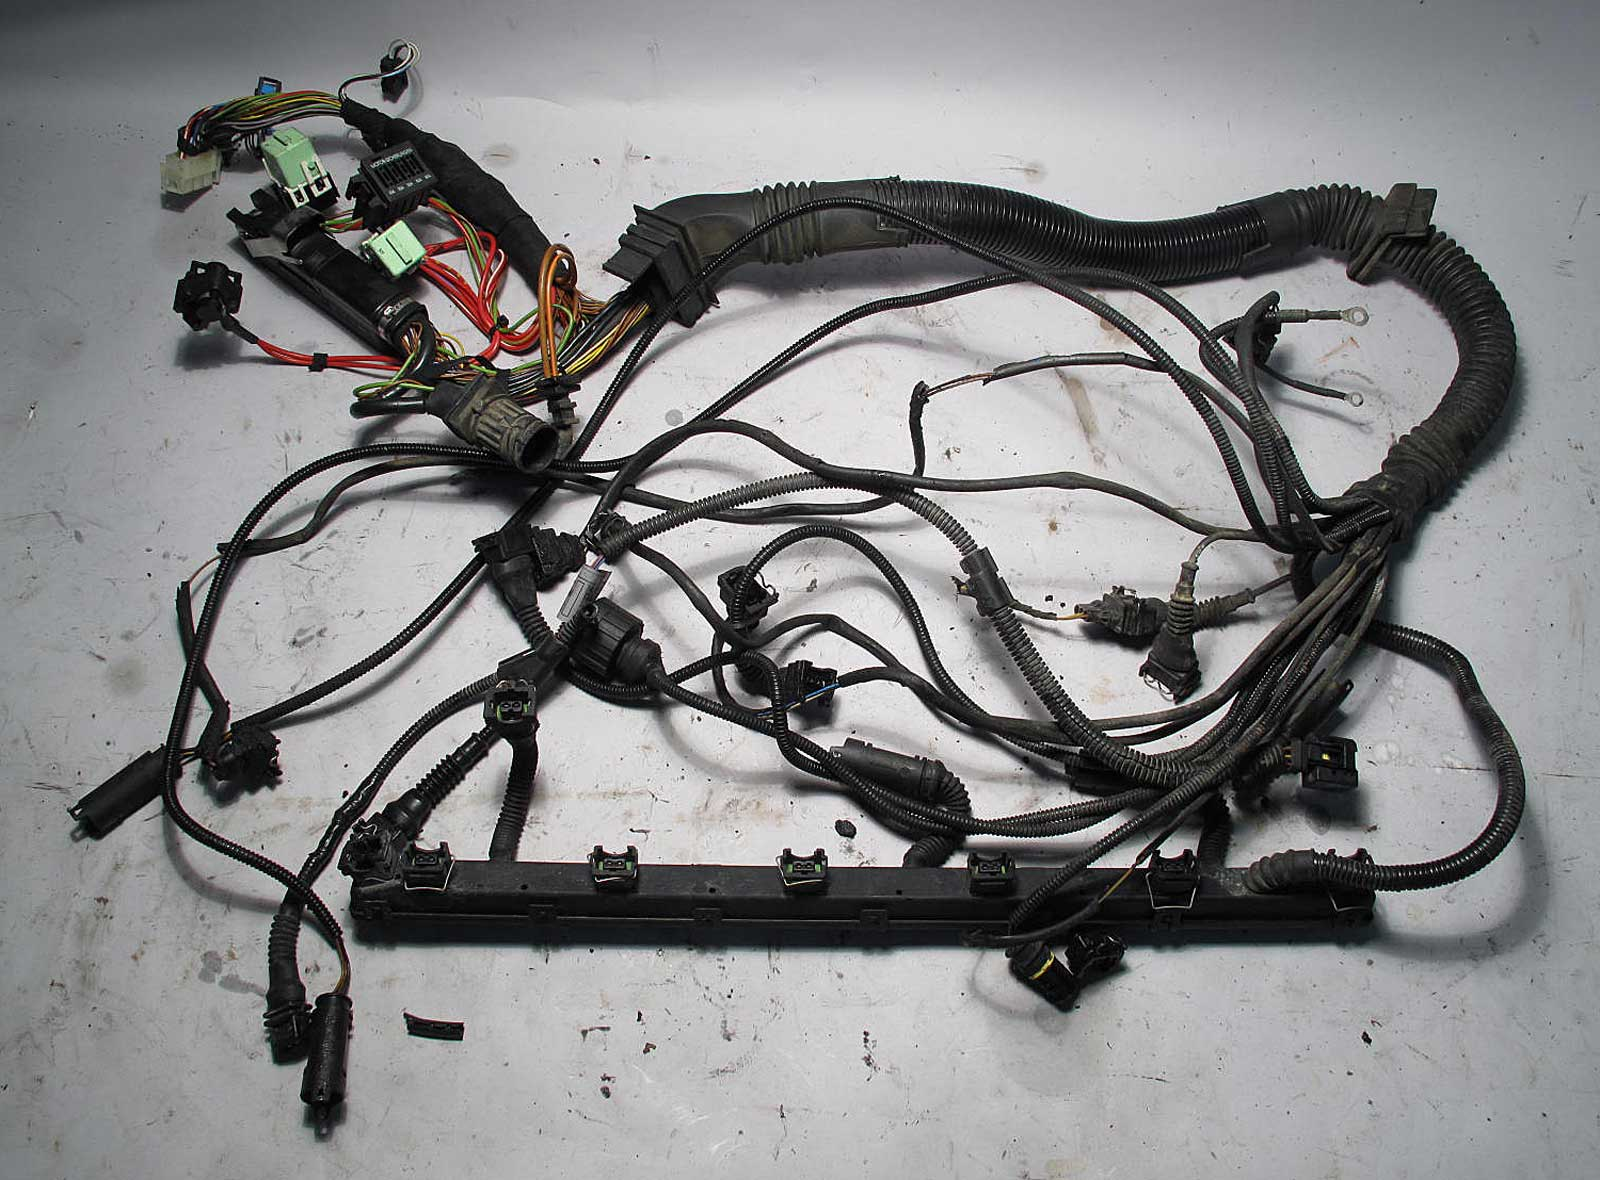 bmw e39 1998 528i 5 spd manual engine wiring harness. Black Bedroom Furniture Sets. Home Design Ideas